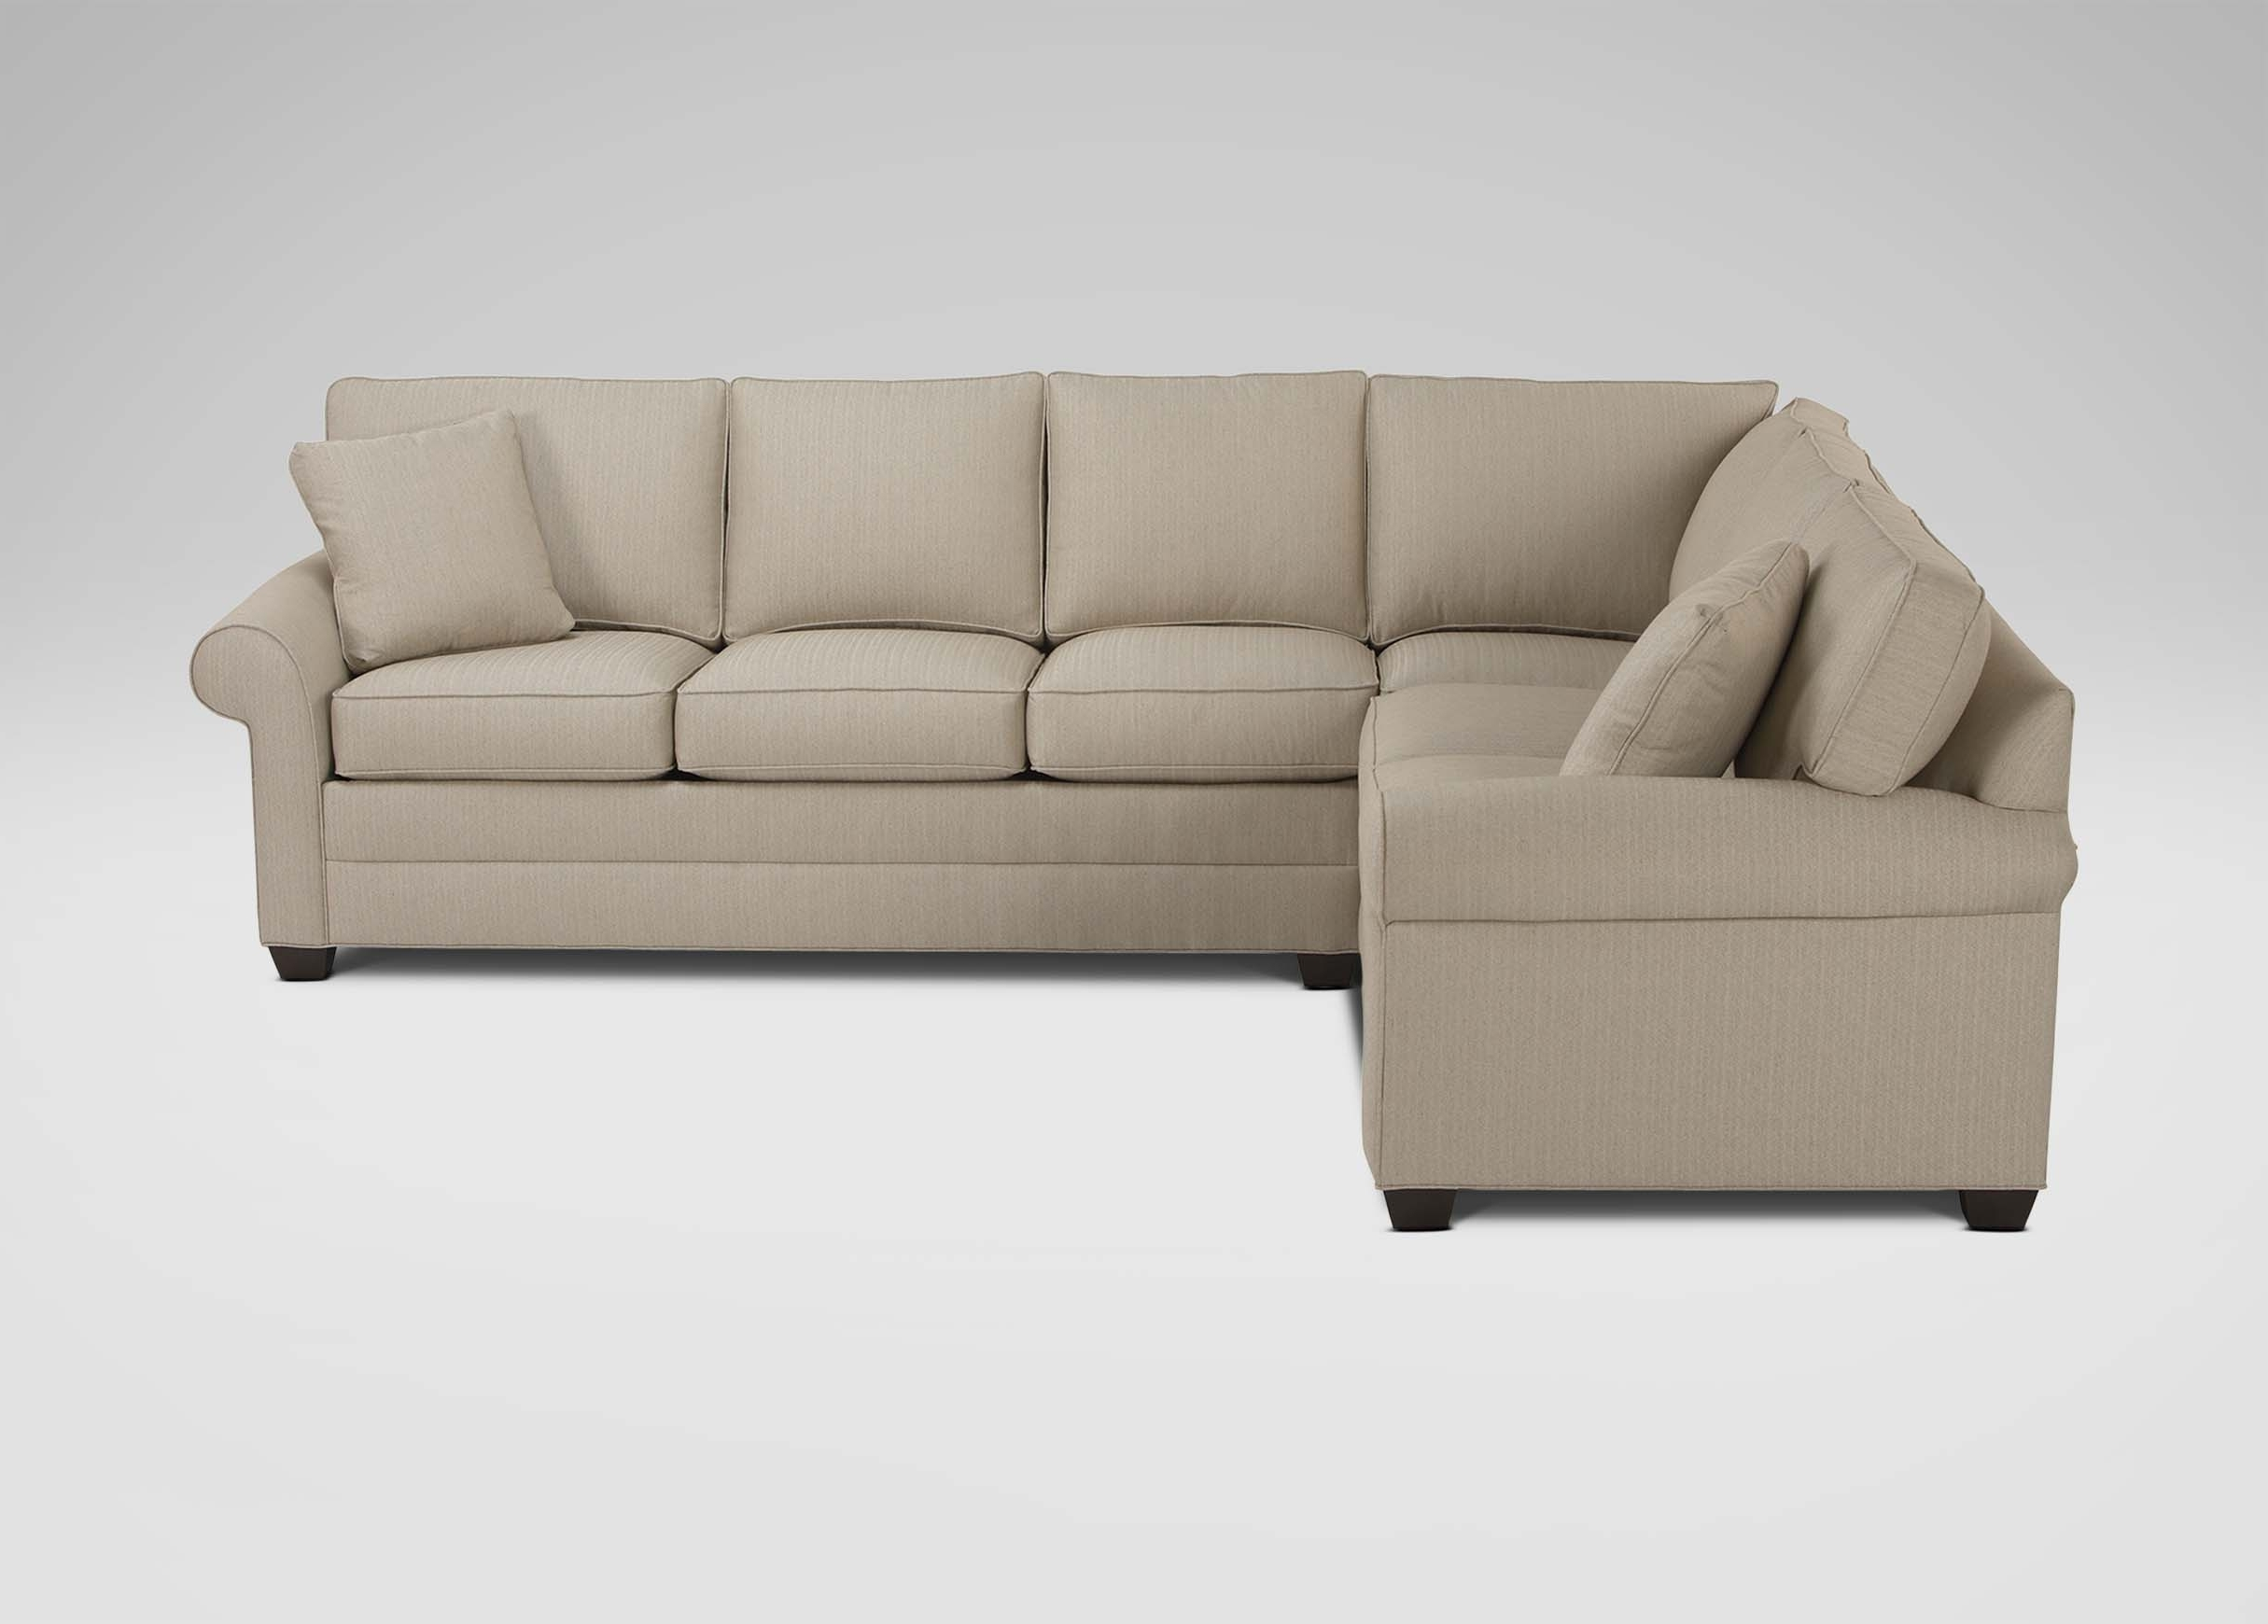 Bennett Roll Arm Sectional (View 3 of 20)